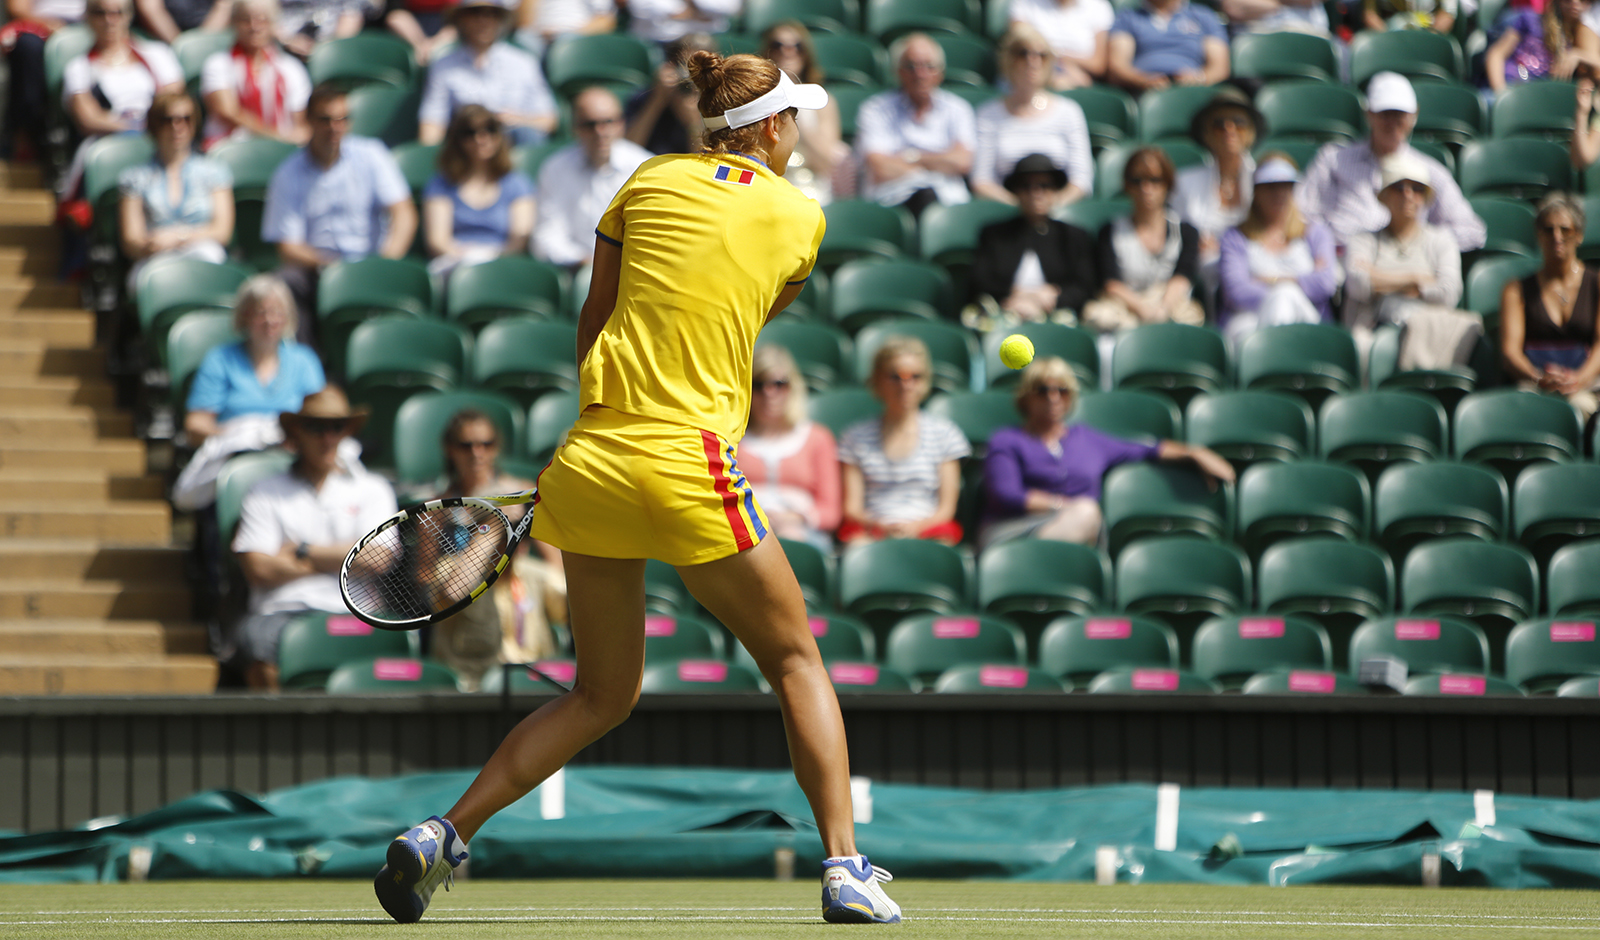 tips-to-buy-sports-accessories-online-main-image-female-tennis-player